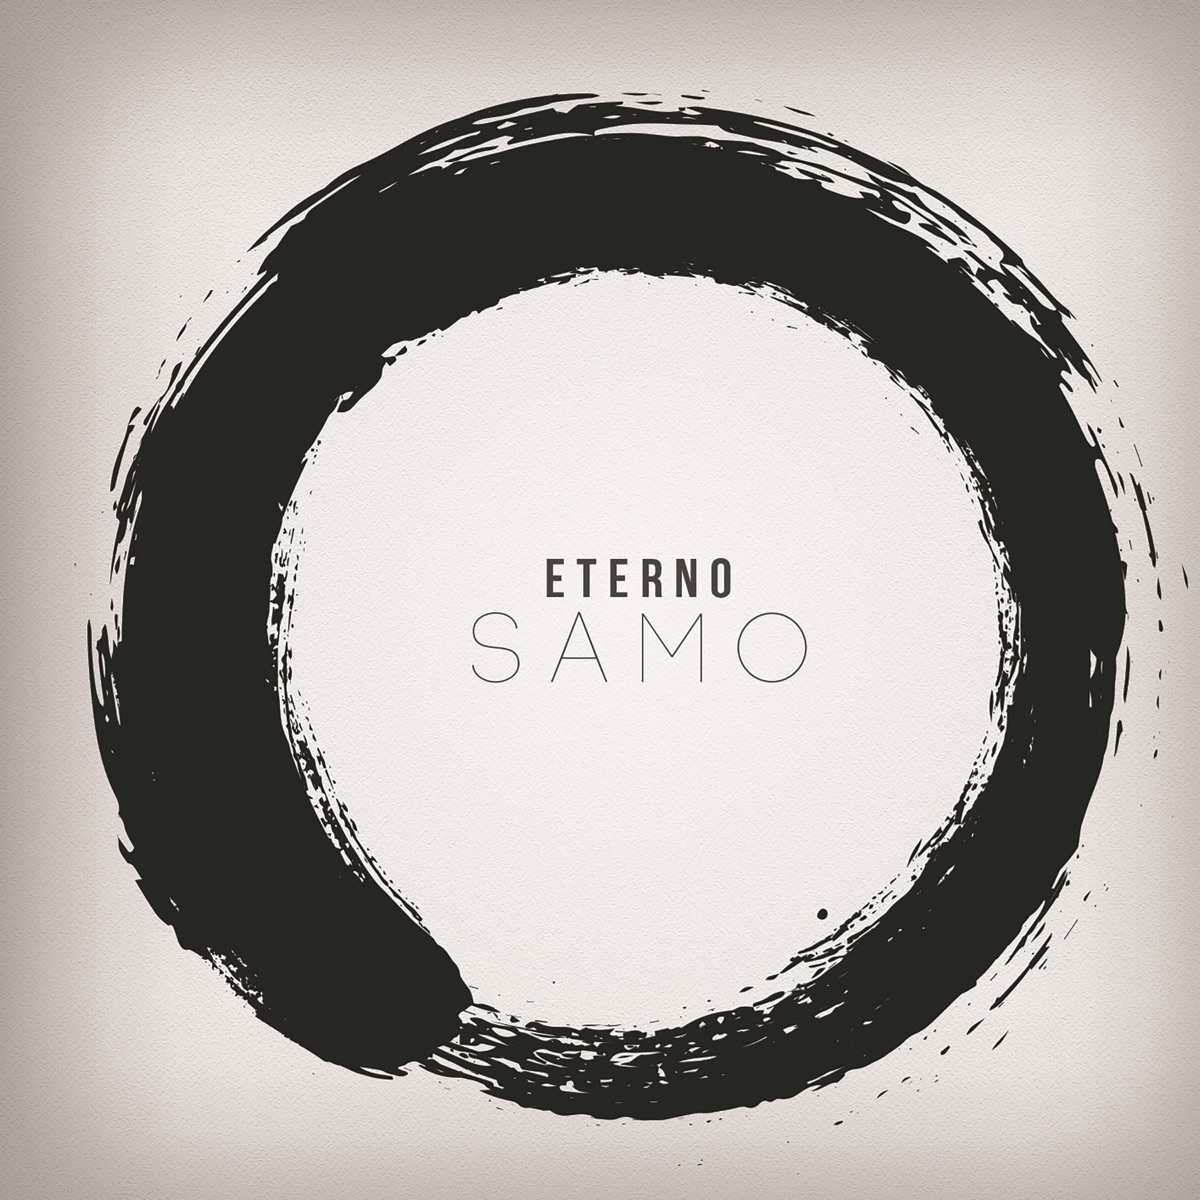 Released may 05 2017 genres electronic dance - Samo Eterno 2017 Itunes Plus Aac M4a Album